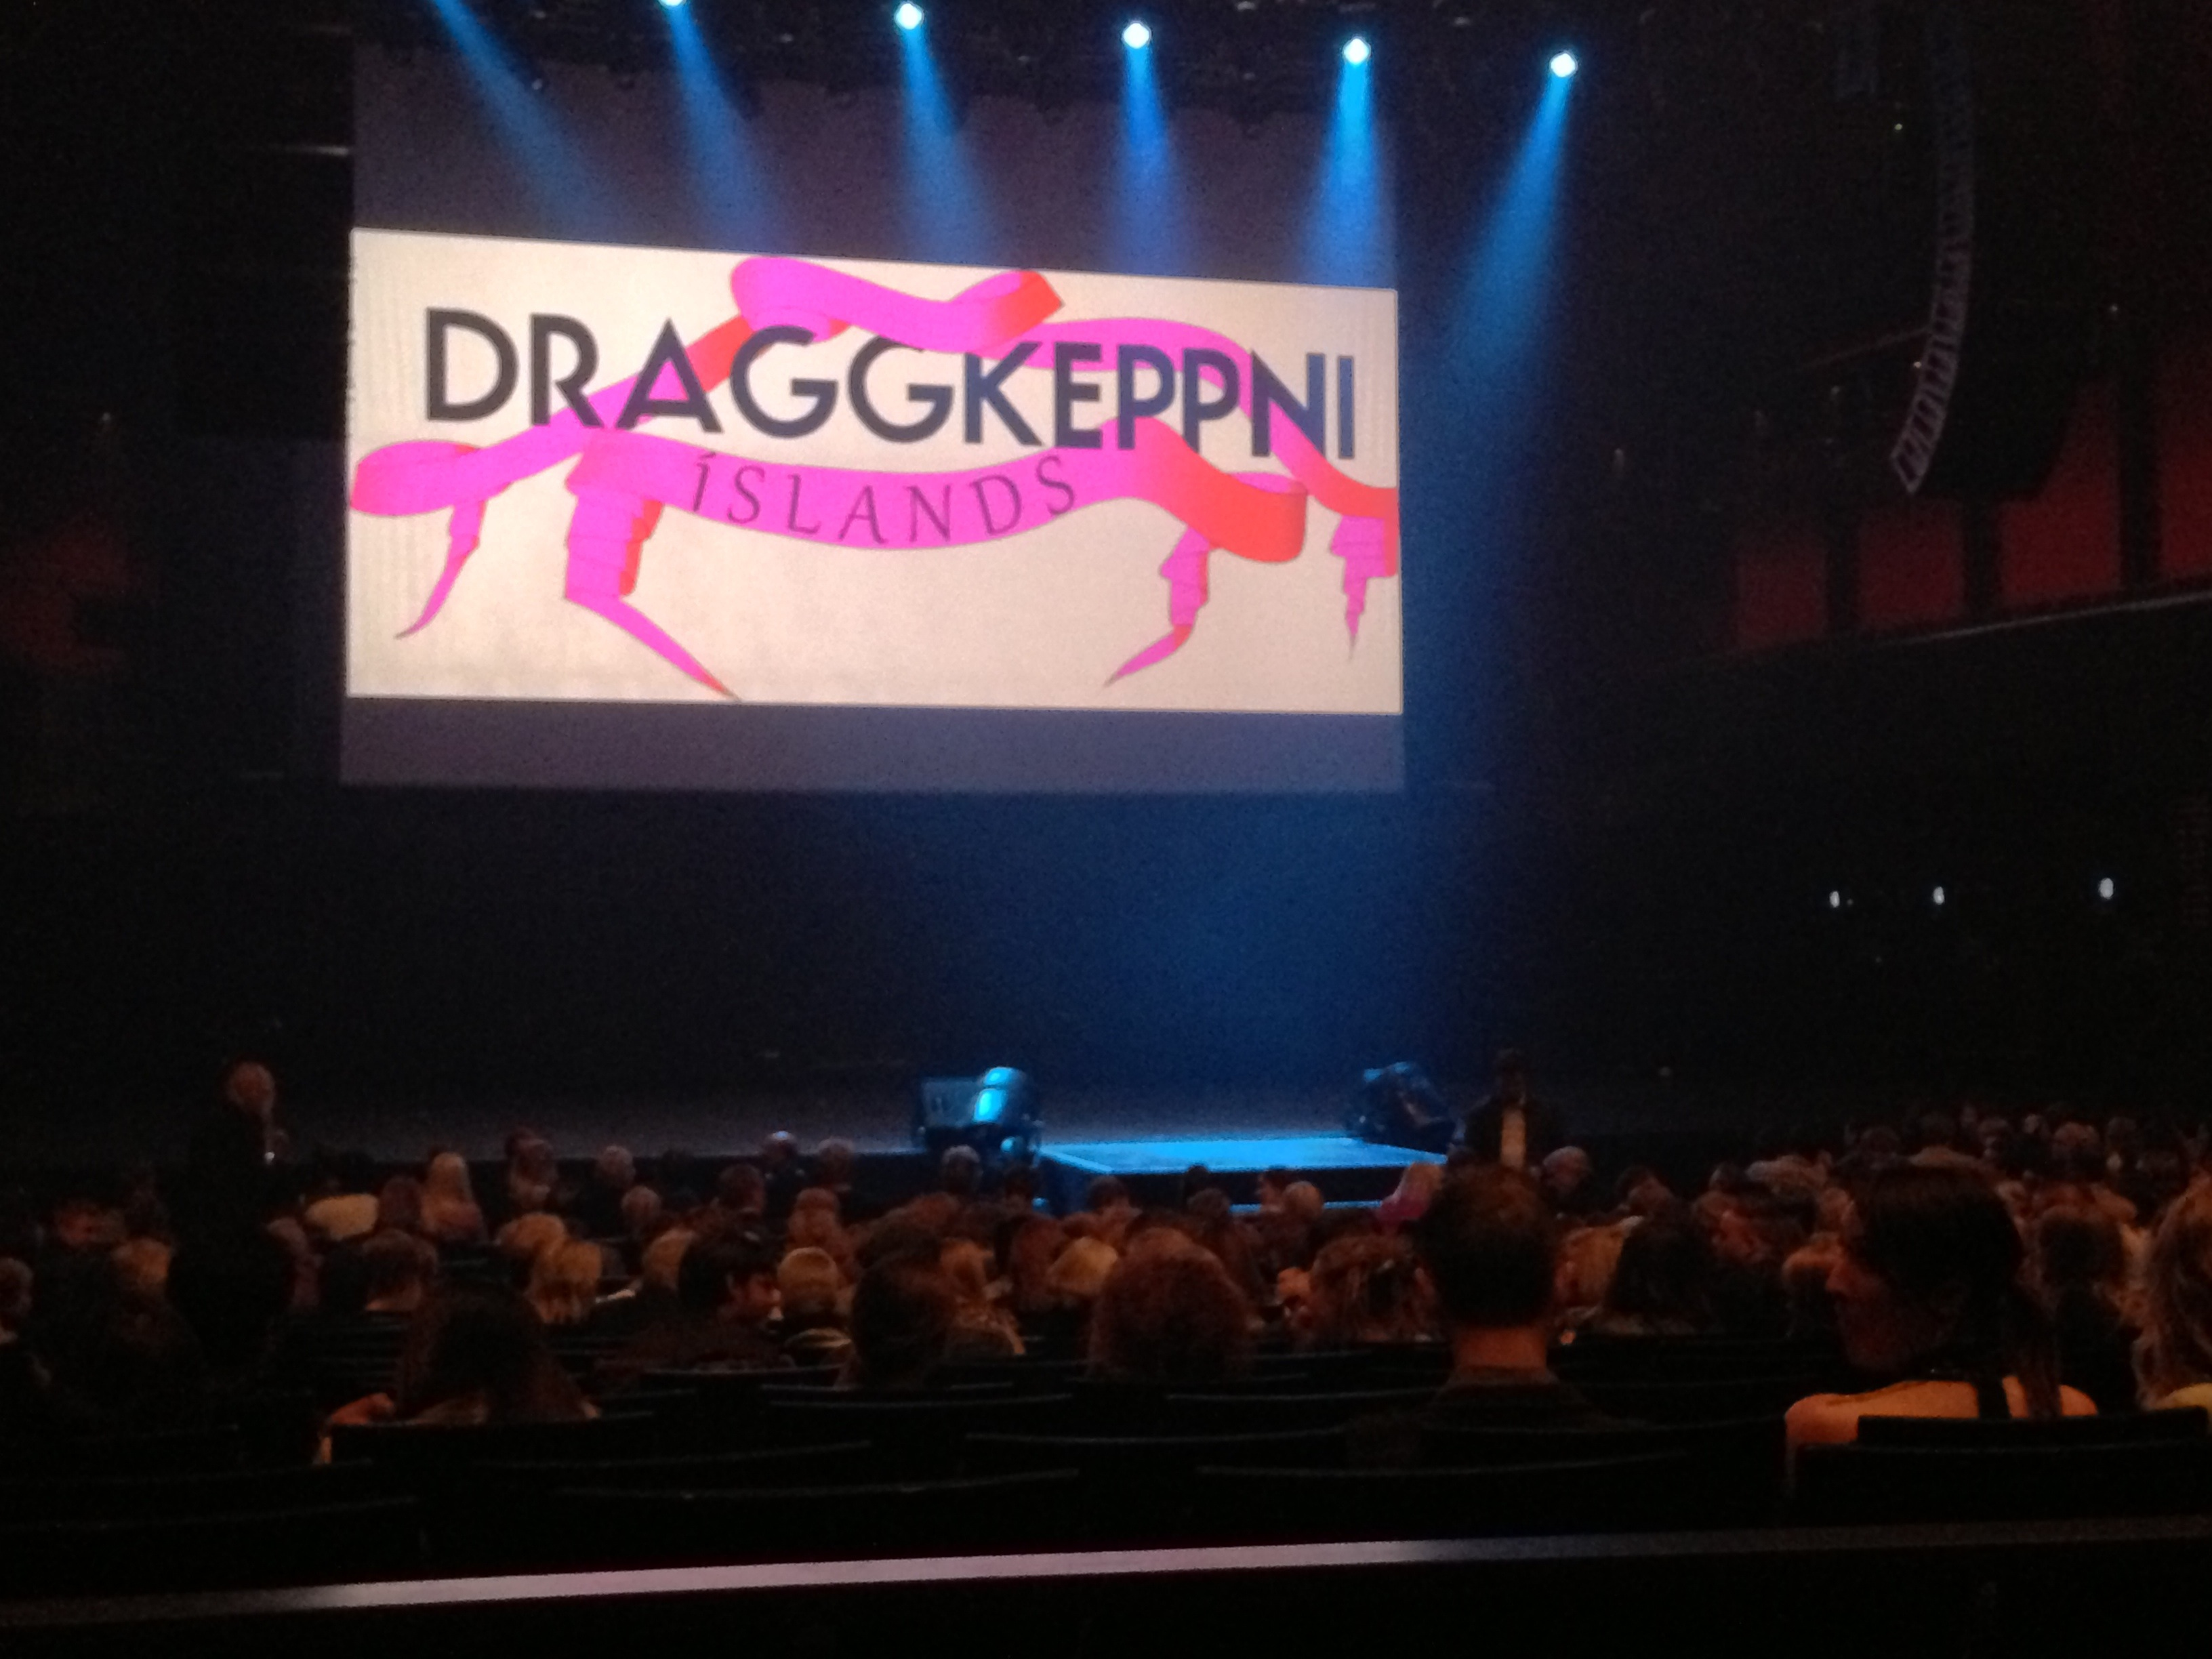 Draggkeppni Islands Iceland S  Drag Competition